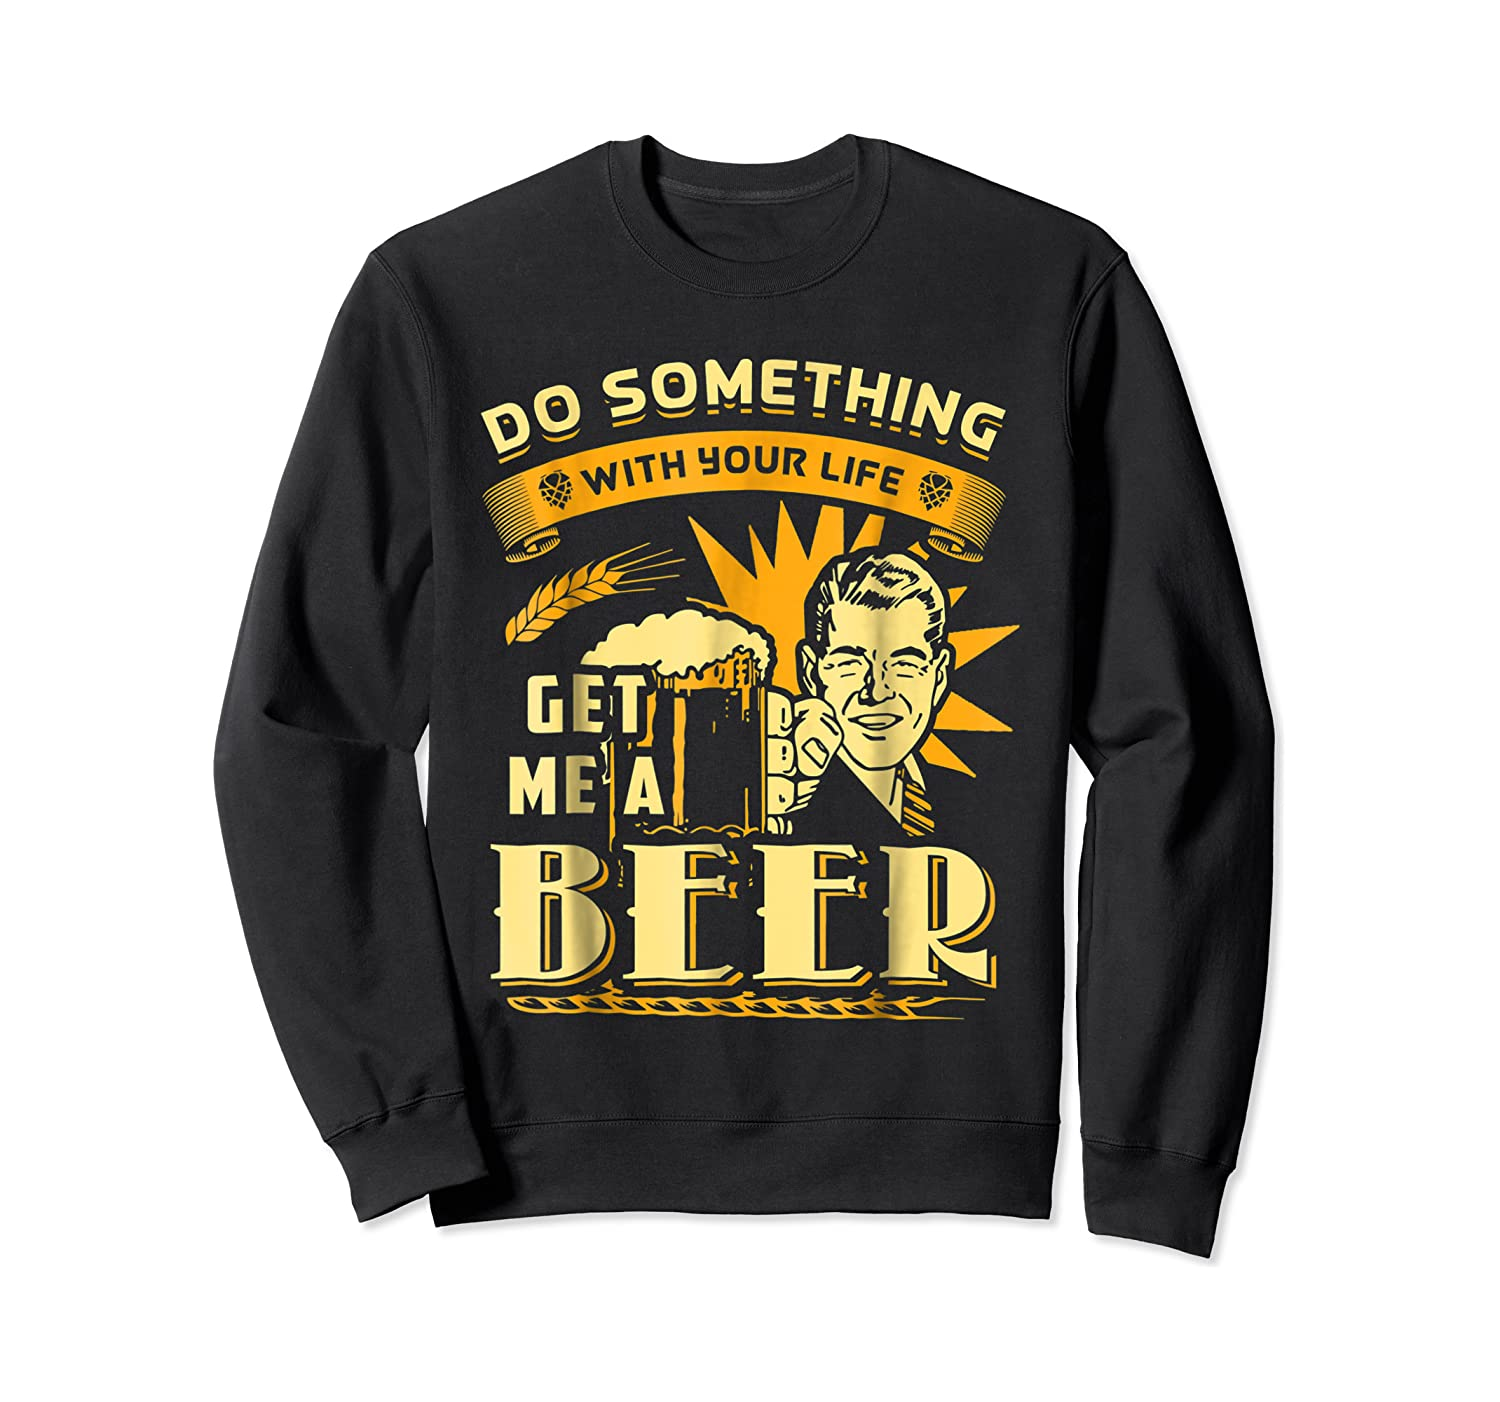 Funny Get Me A Beer Retro Do Something With Your Life Shirts Crewneck Sweater